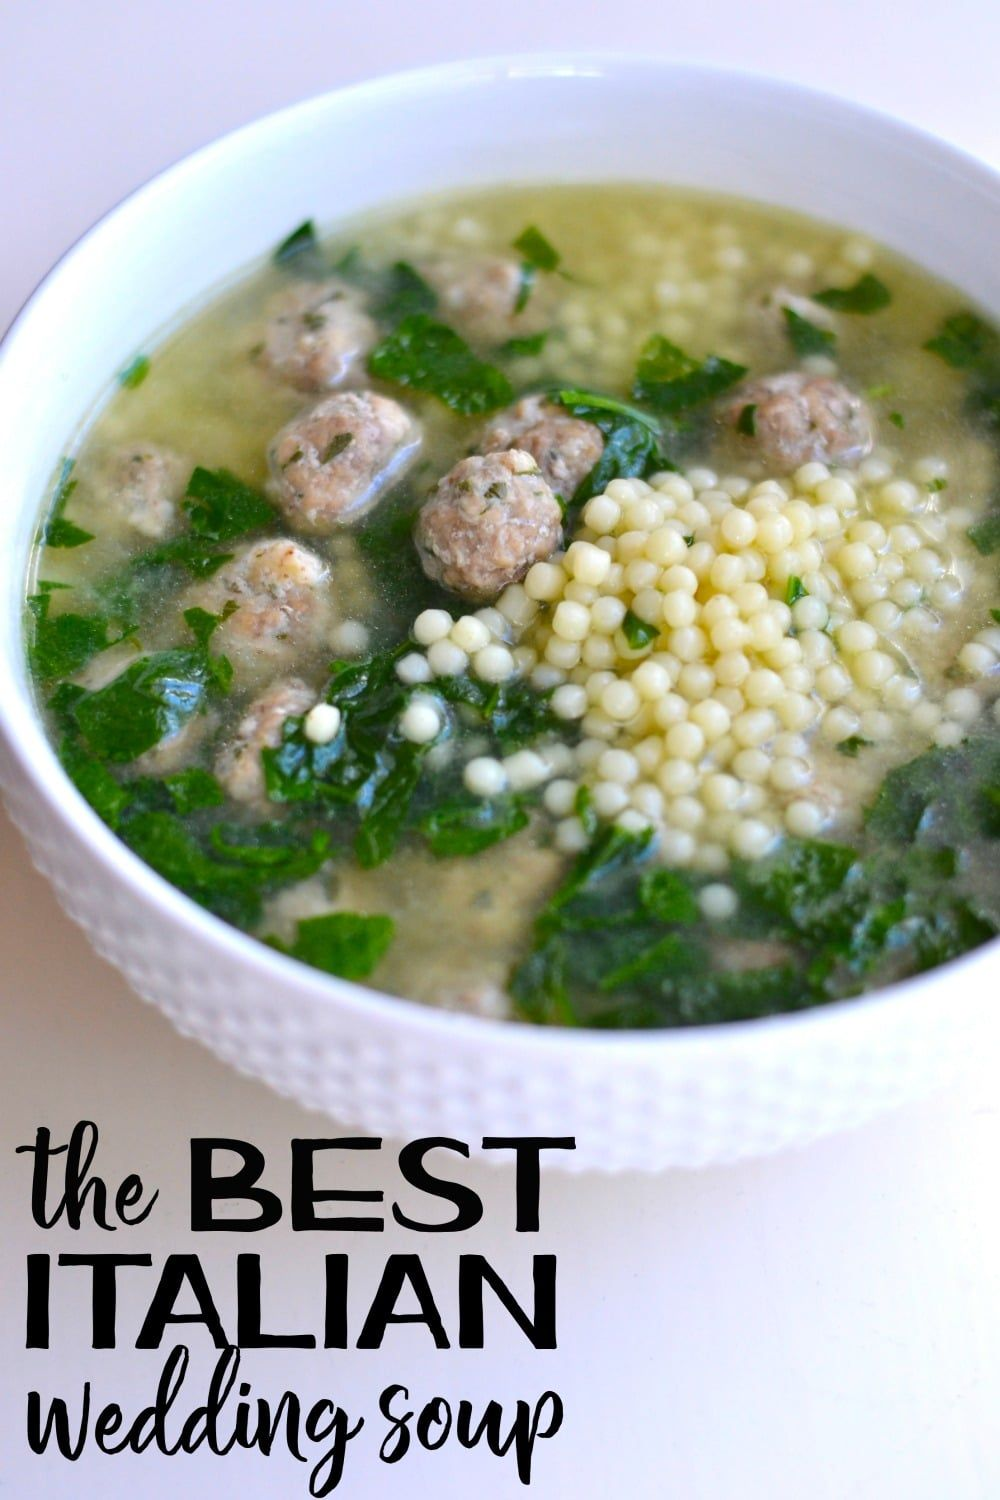 This Italian Wedding Soup Recipe Is Delicious And Nutritious Everyone Loves It Via Goodinthesimple